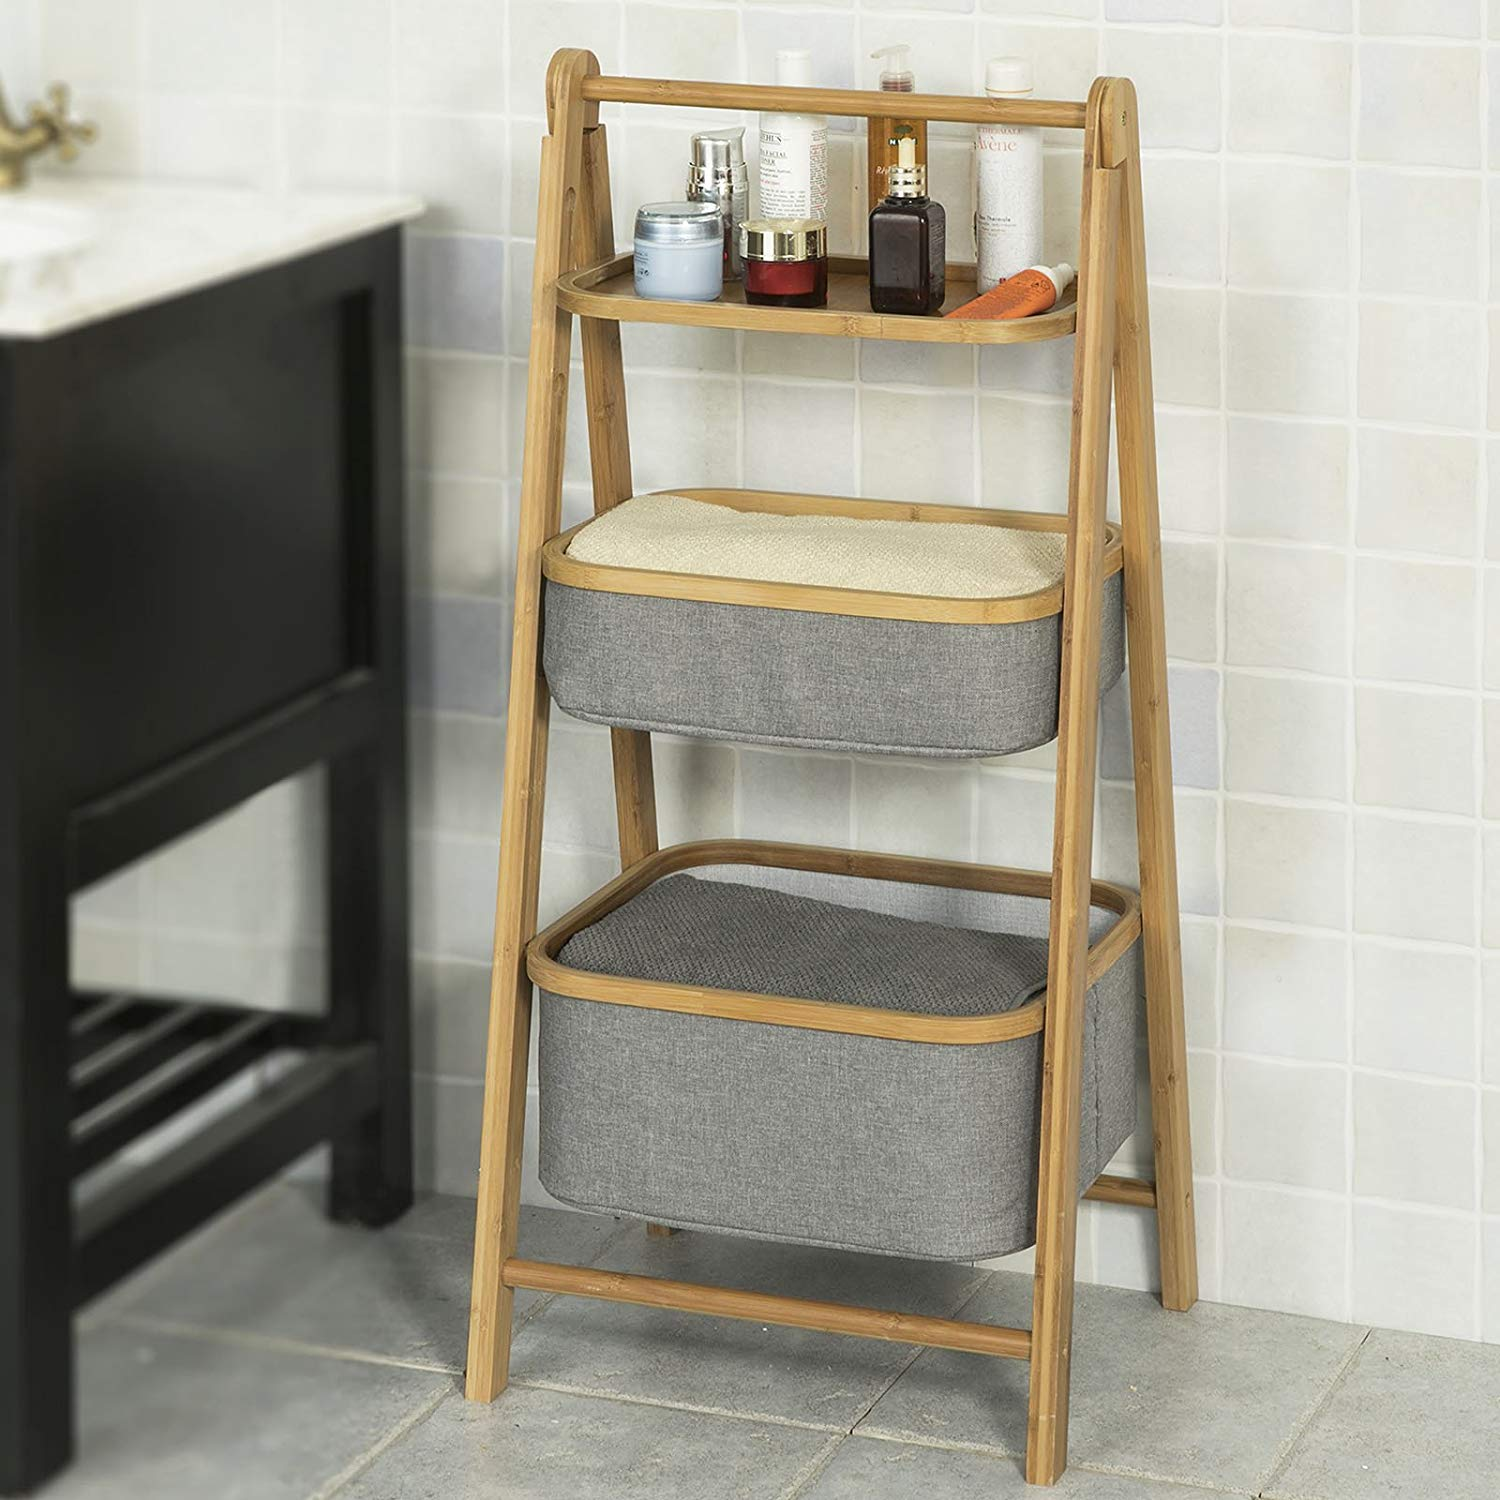 3 Tiers Foldable Bamboo Bathroom Shelf with 1 Shelf 2 Baskets, Storage Display Shelving Unit